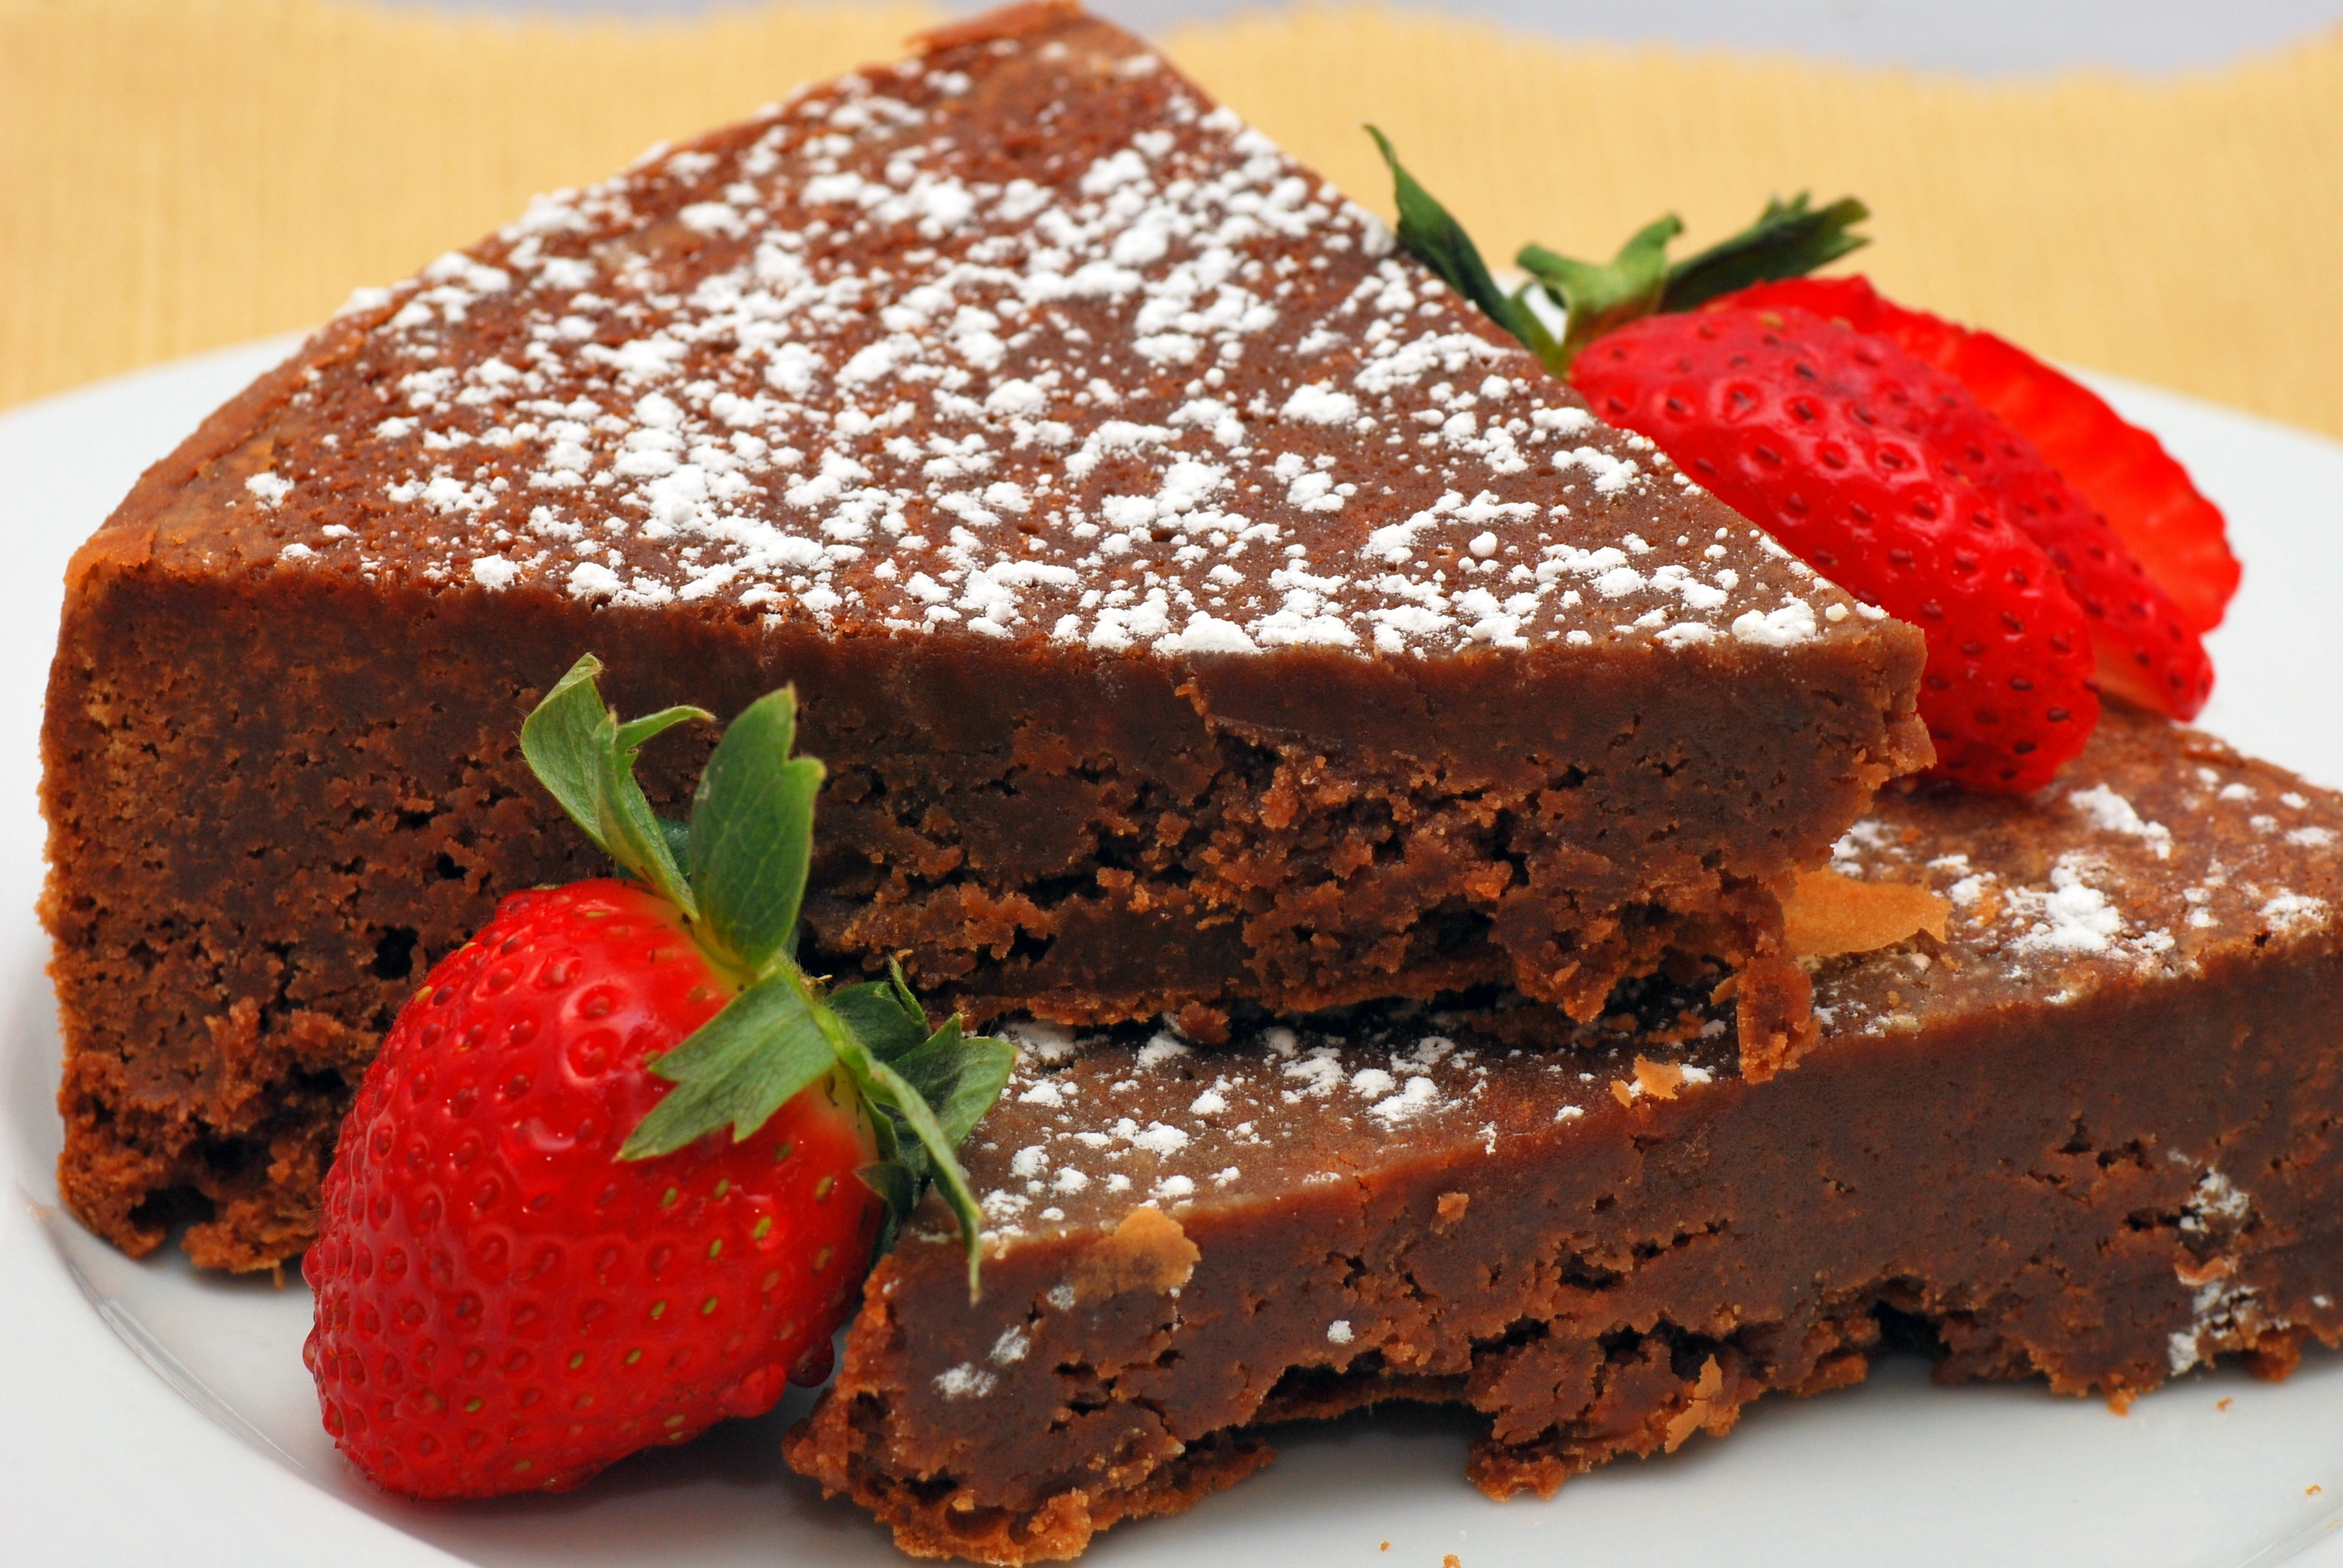 Chocolate with Francois: Charlie's Afternoon Chocolate Cake